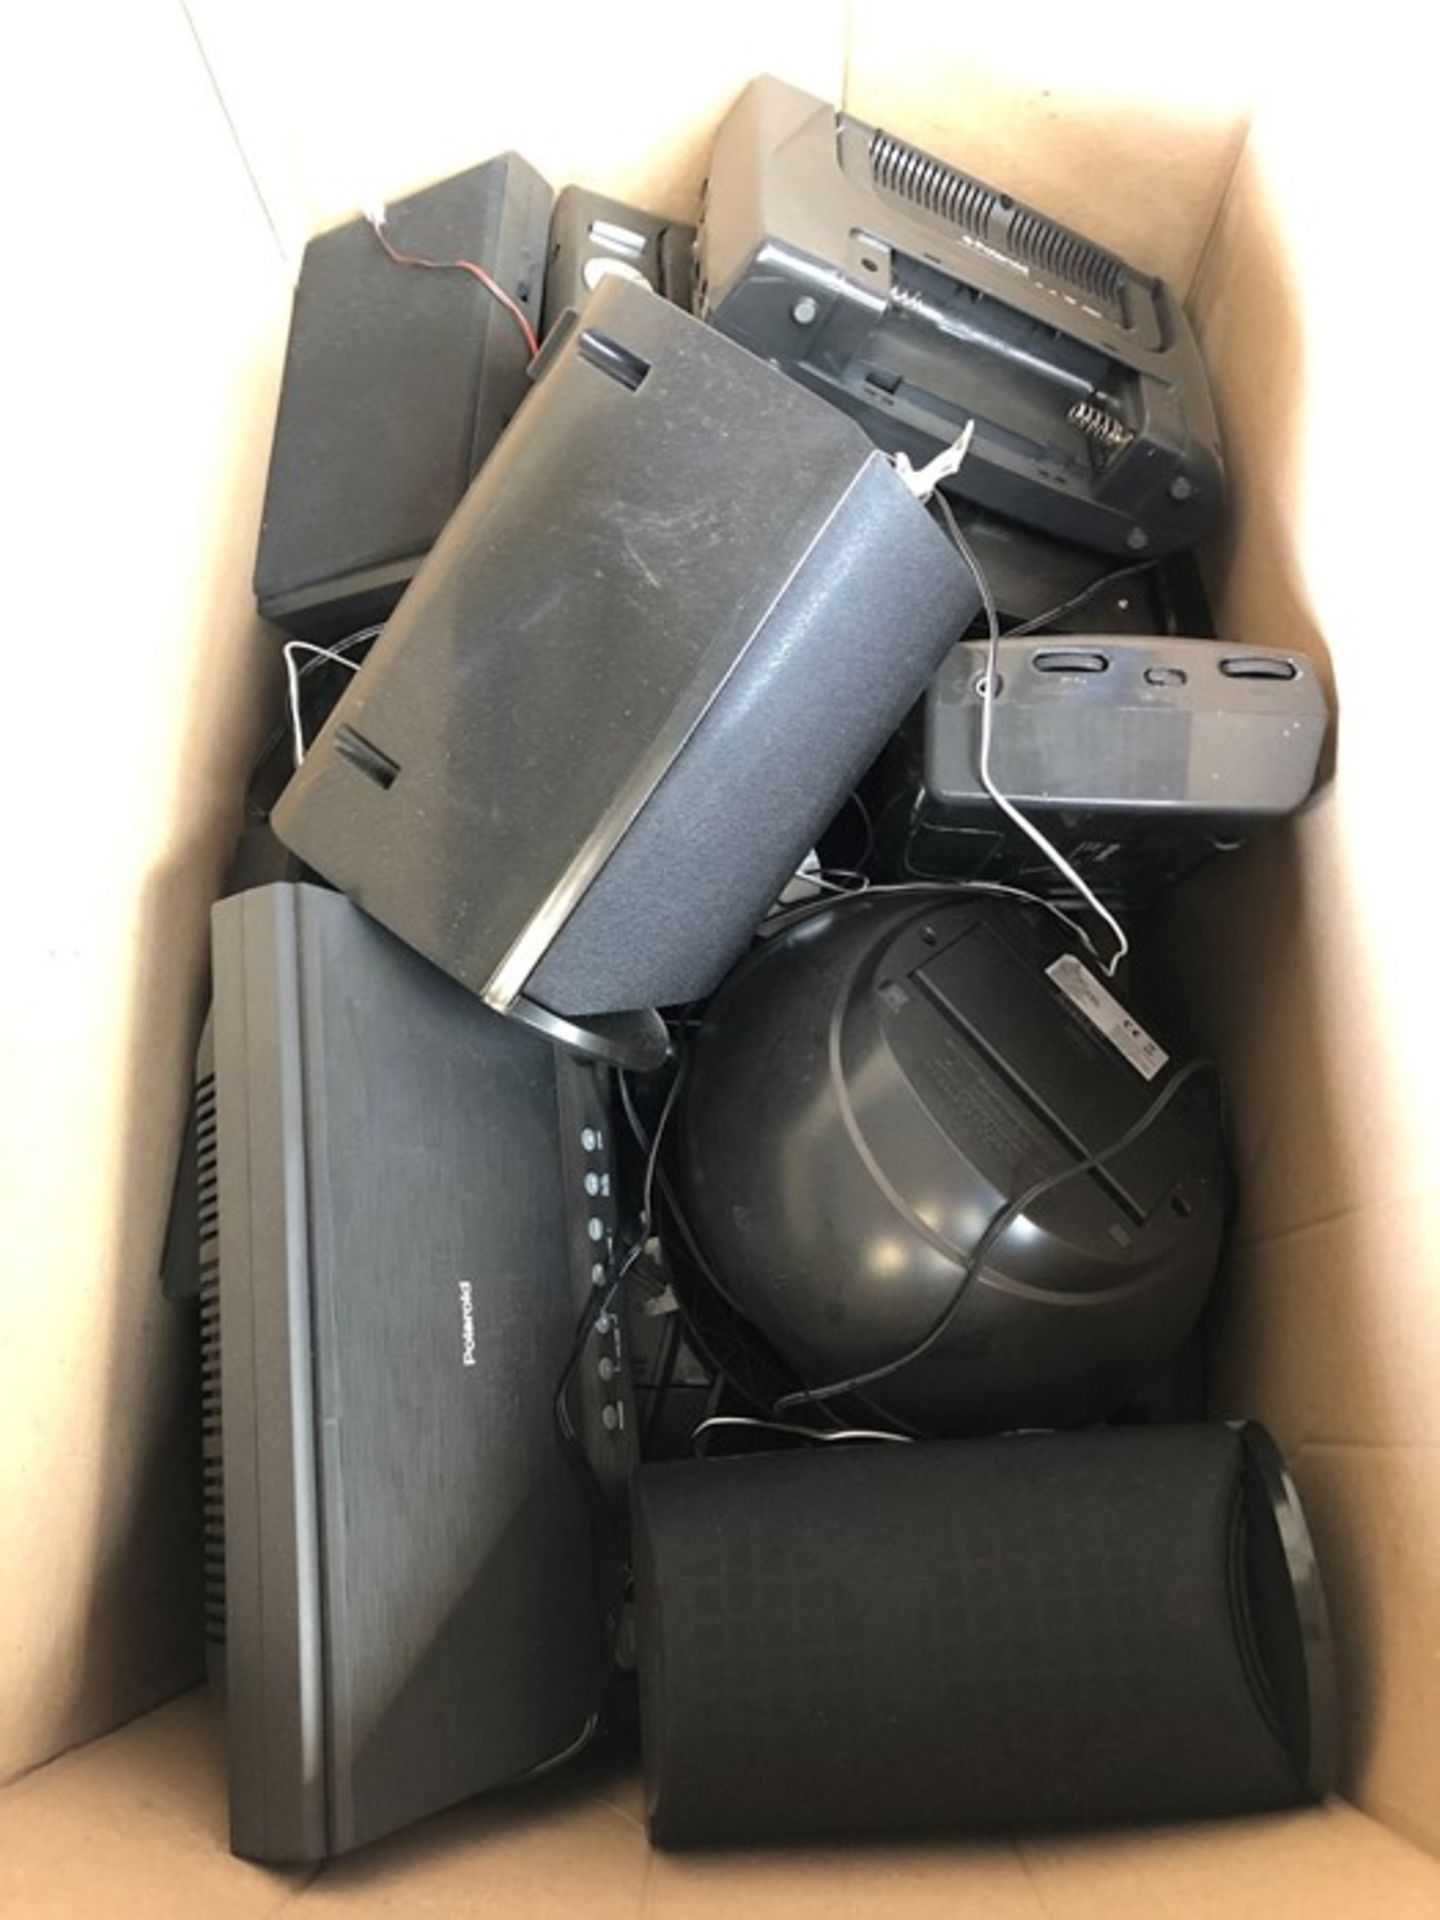 Lot 13 - 1 LOT TO CONTAIN APPROX 15 ASSORTED ELECTRICALS, INCLUDES RADIOS, ONN BOOMBOXES, CD MICRO SYSTEMS,